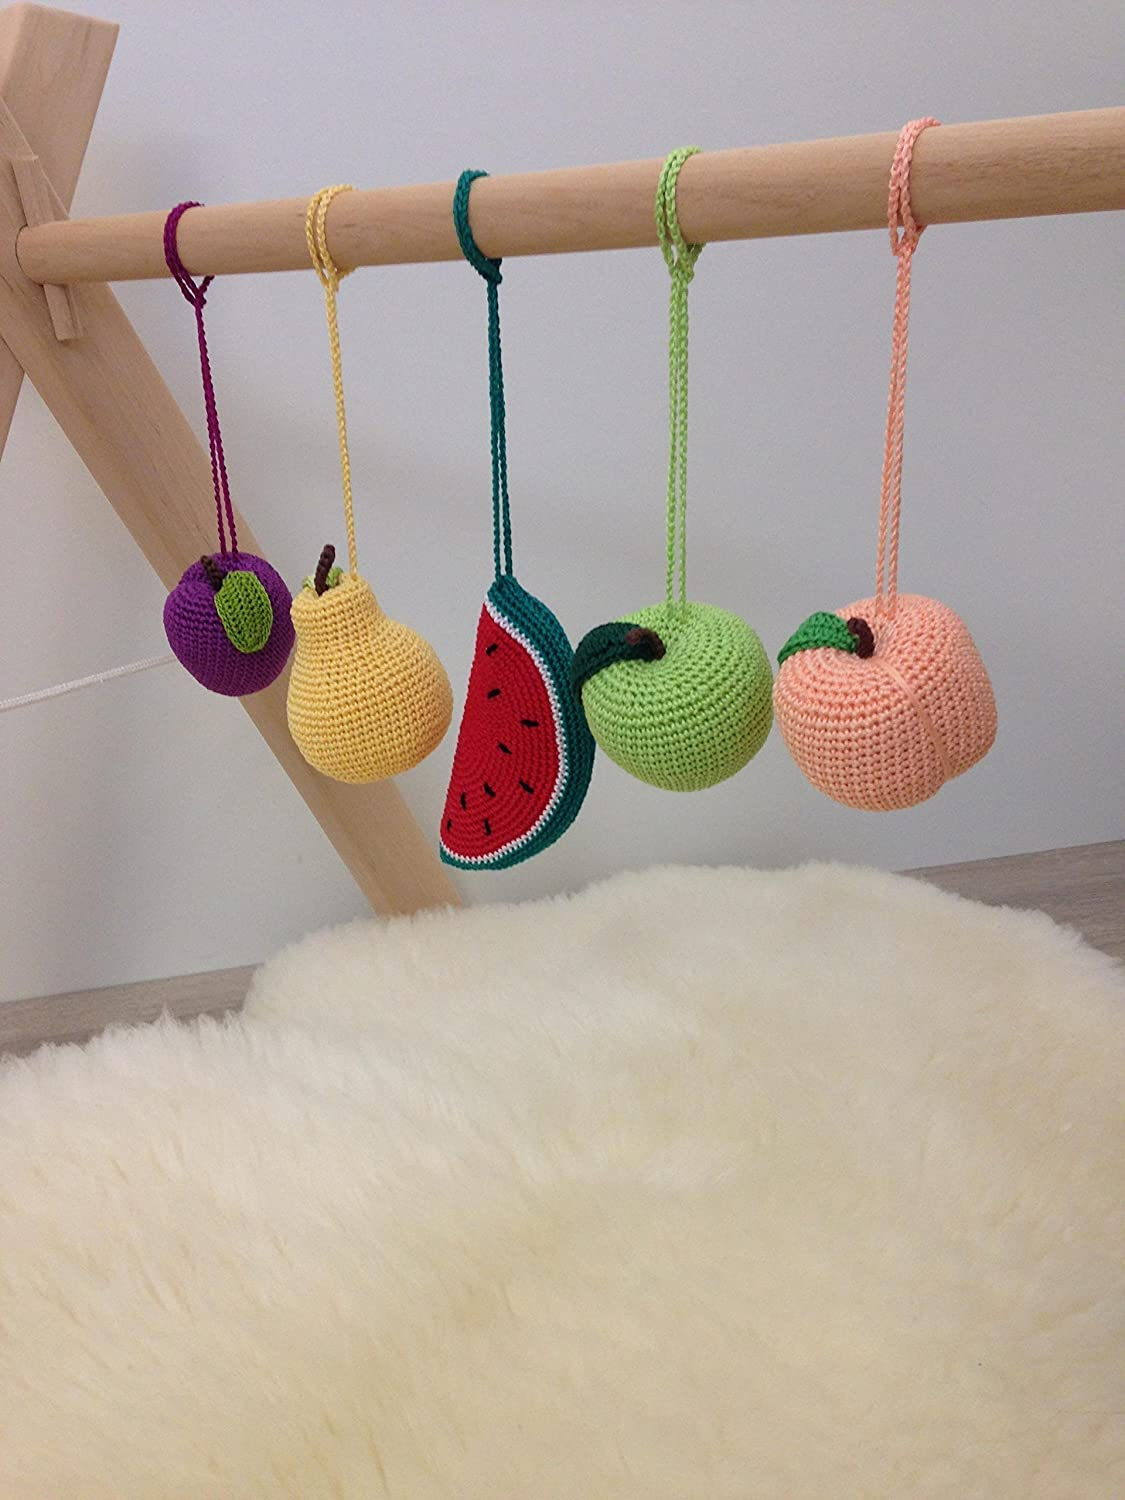 Crib gym for babies - Amazon Com Set Of 5 Hanging Fruits Baby Gym Toy Crib Toy Shower Gift Organic Crochet Pretend Food Baby Rattle Hanging Toy Newborn Gift Handmade